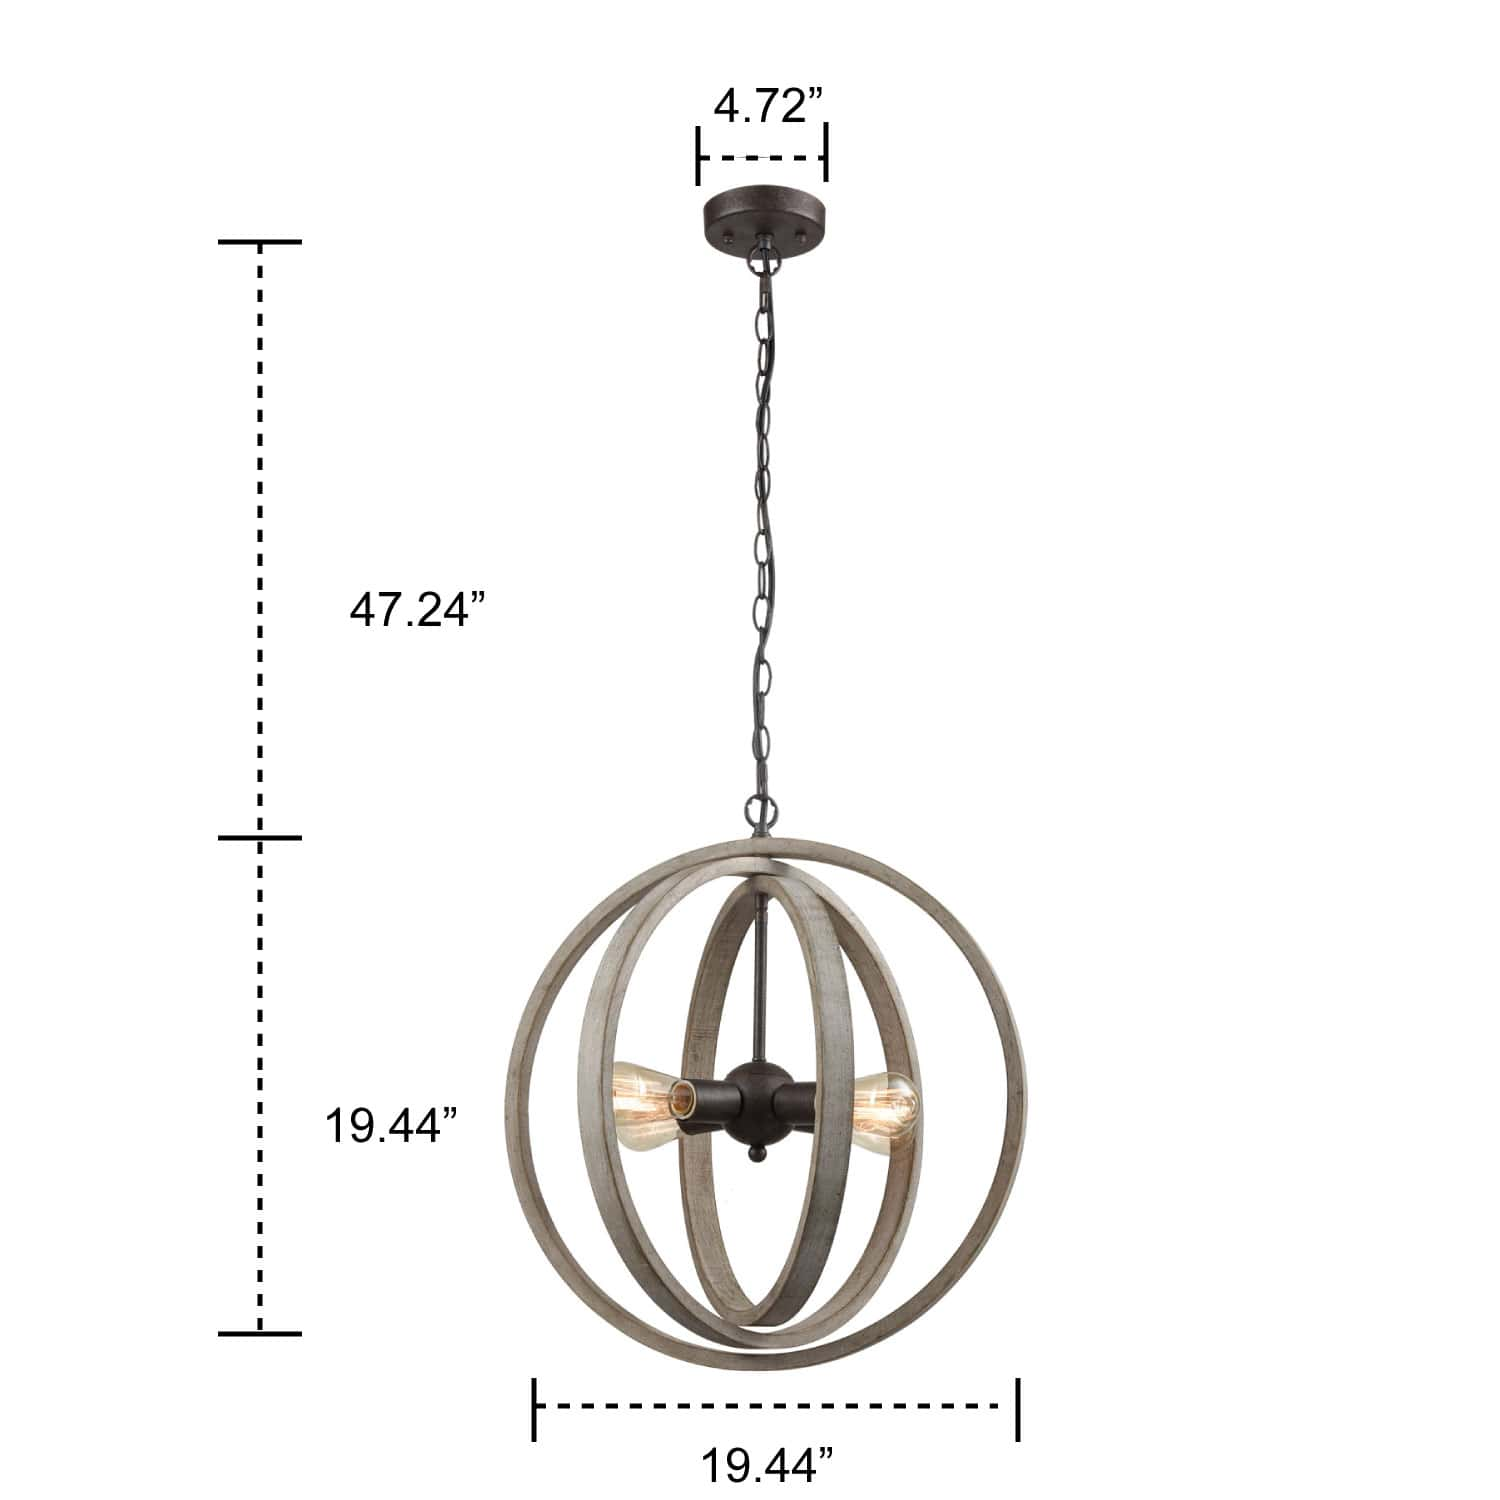 Rustic Pendant Chandelier with Globe Wood Shade - 4 Light